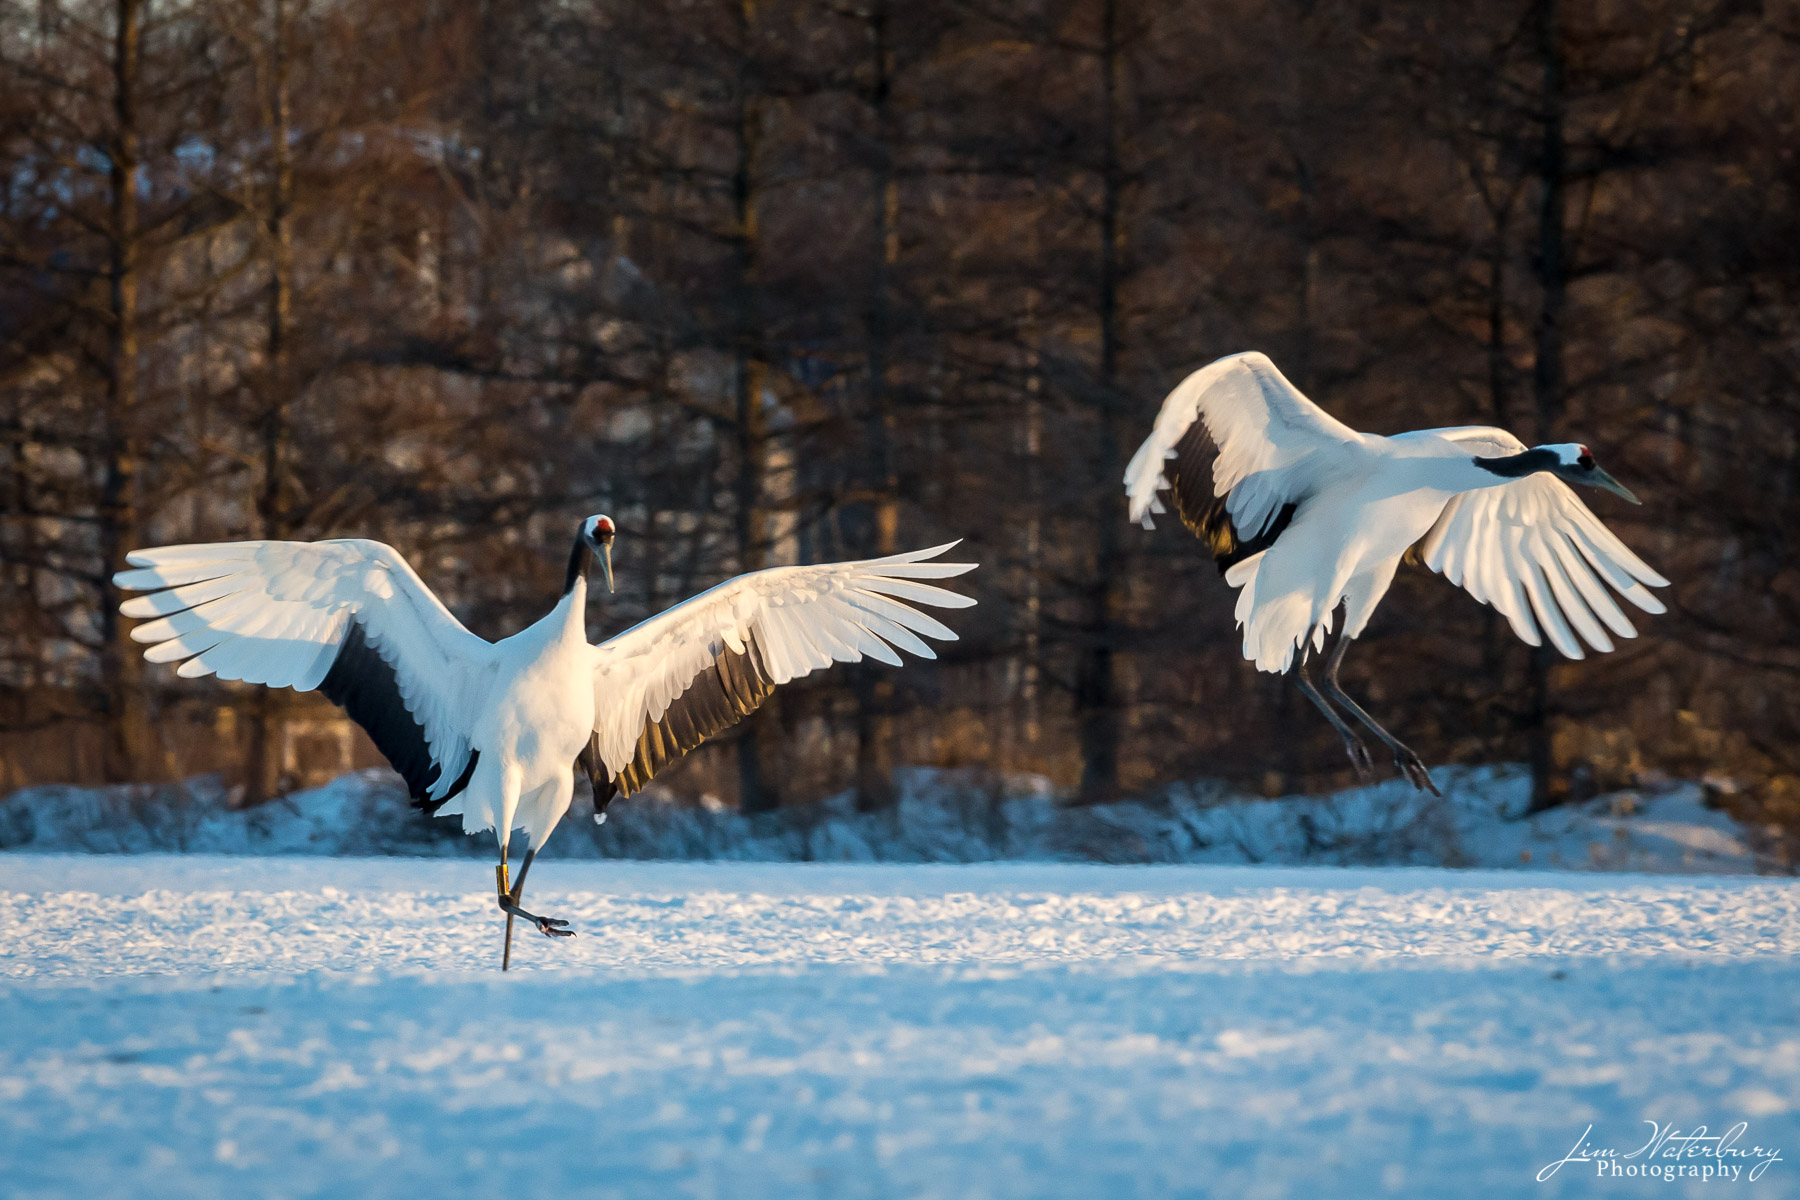 Japanese red-crowned cranes take flight in the glow of the warm afternoon sunlight, in winter,  near Tsurui, Hokkaido.